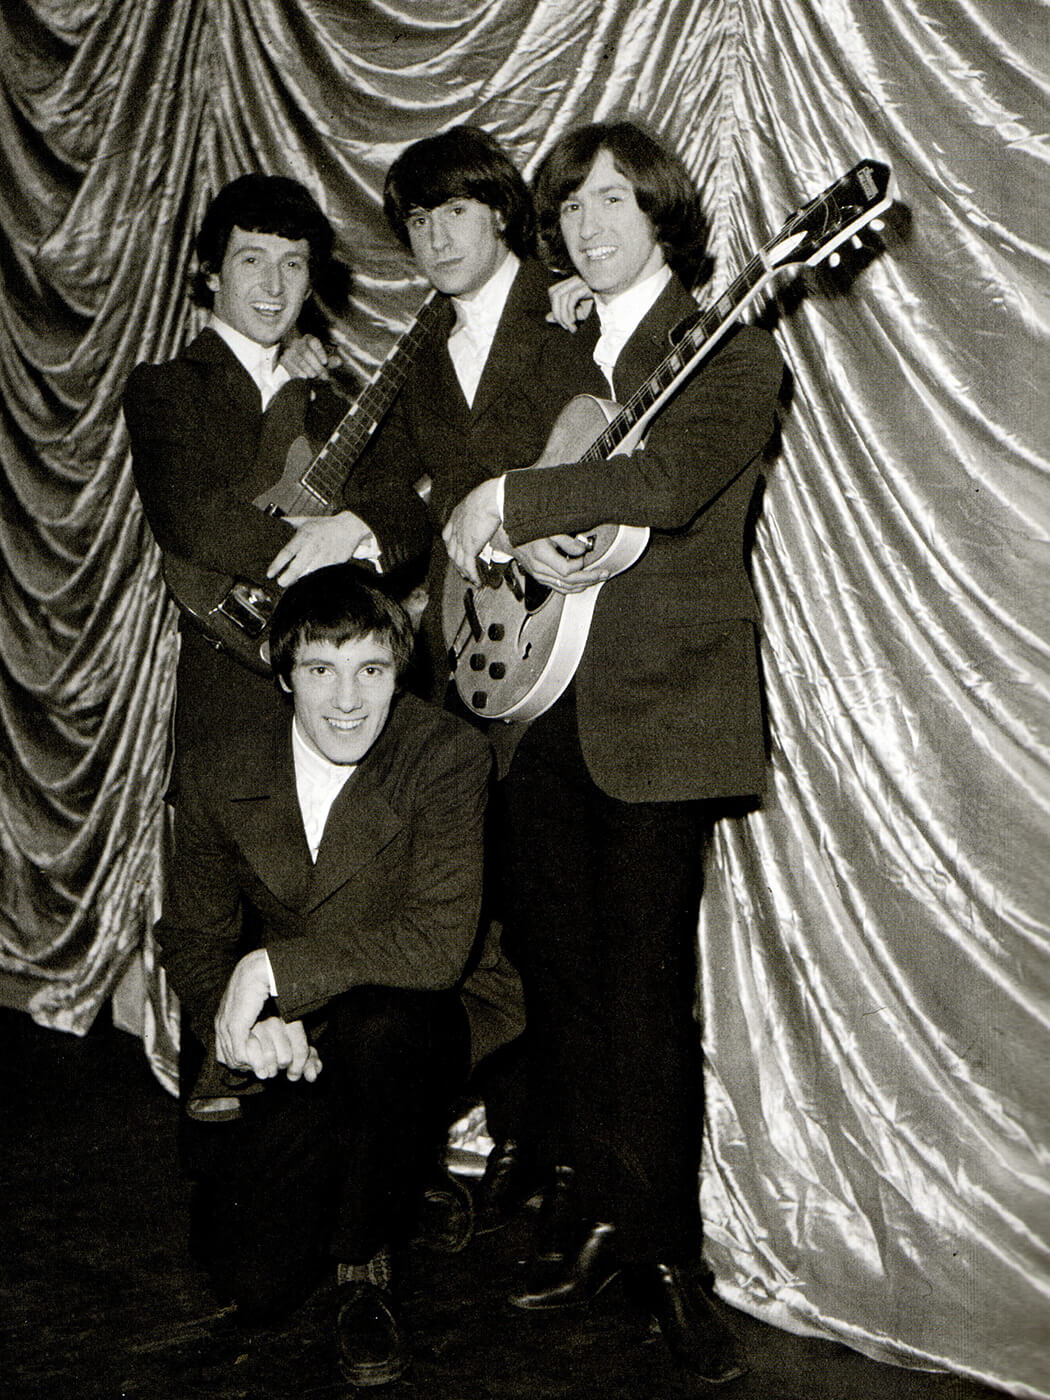 The Kinks with Ray and Dave Davies